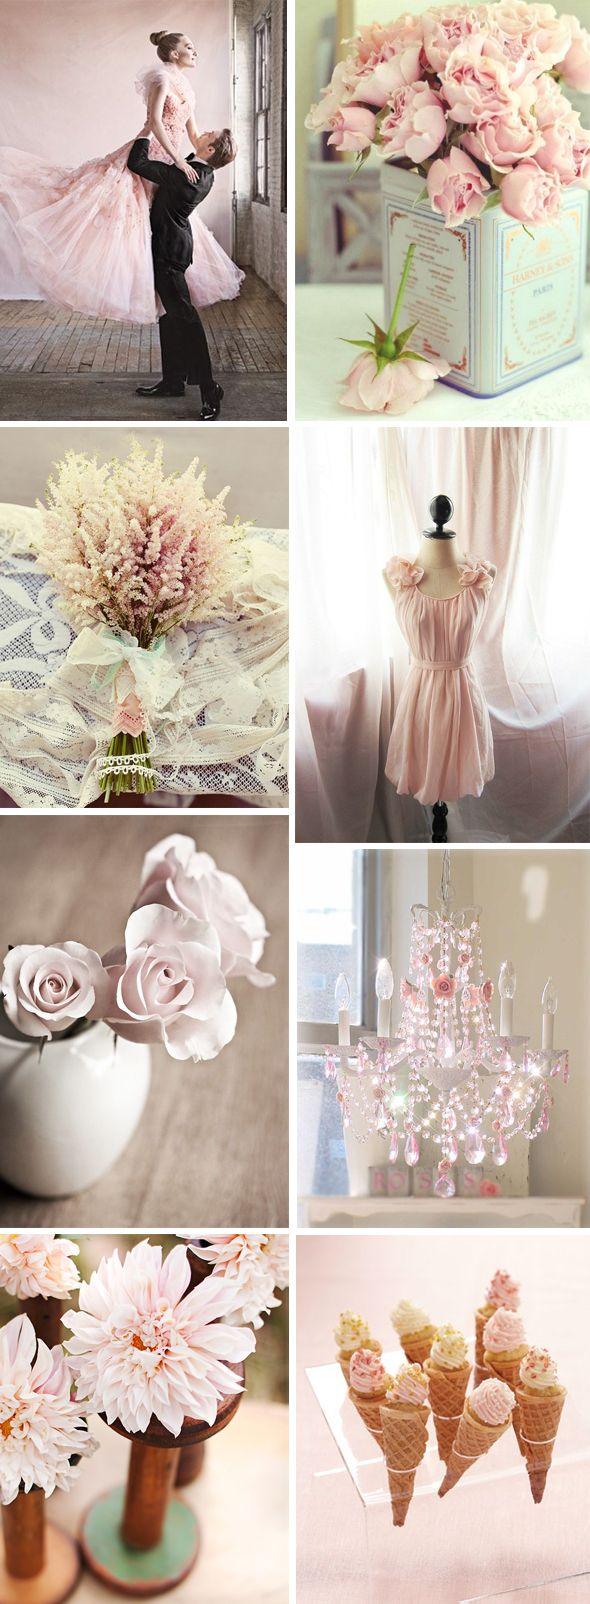 pale pink weddings - just for colour ideas (pale pink, cream, pale blue/turquoise or soft mint green)